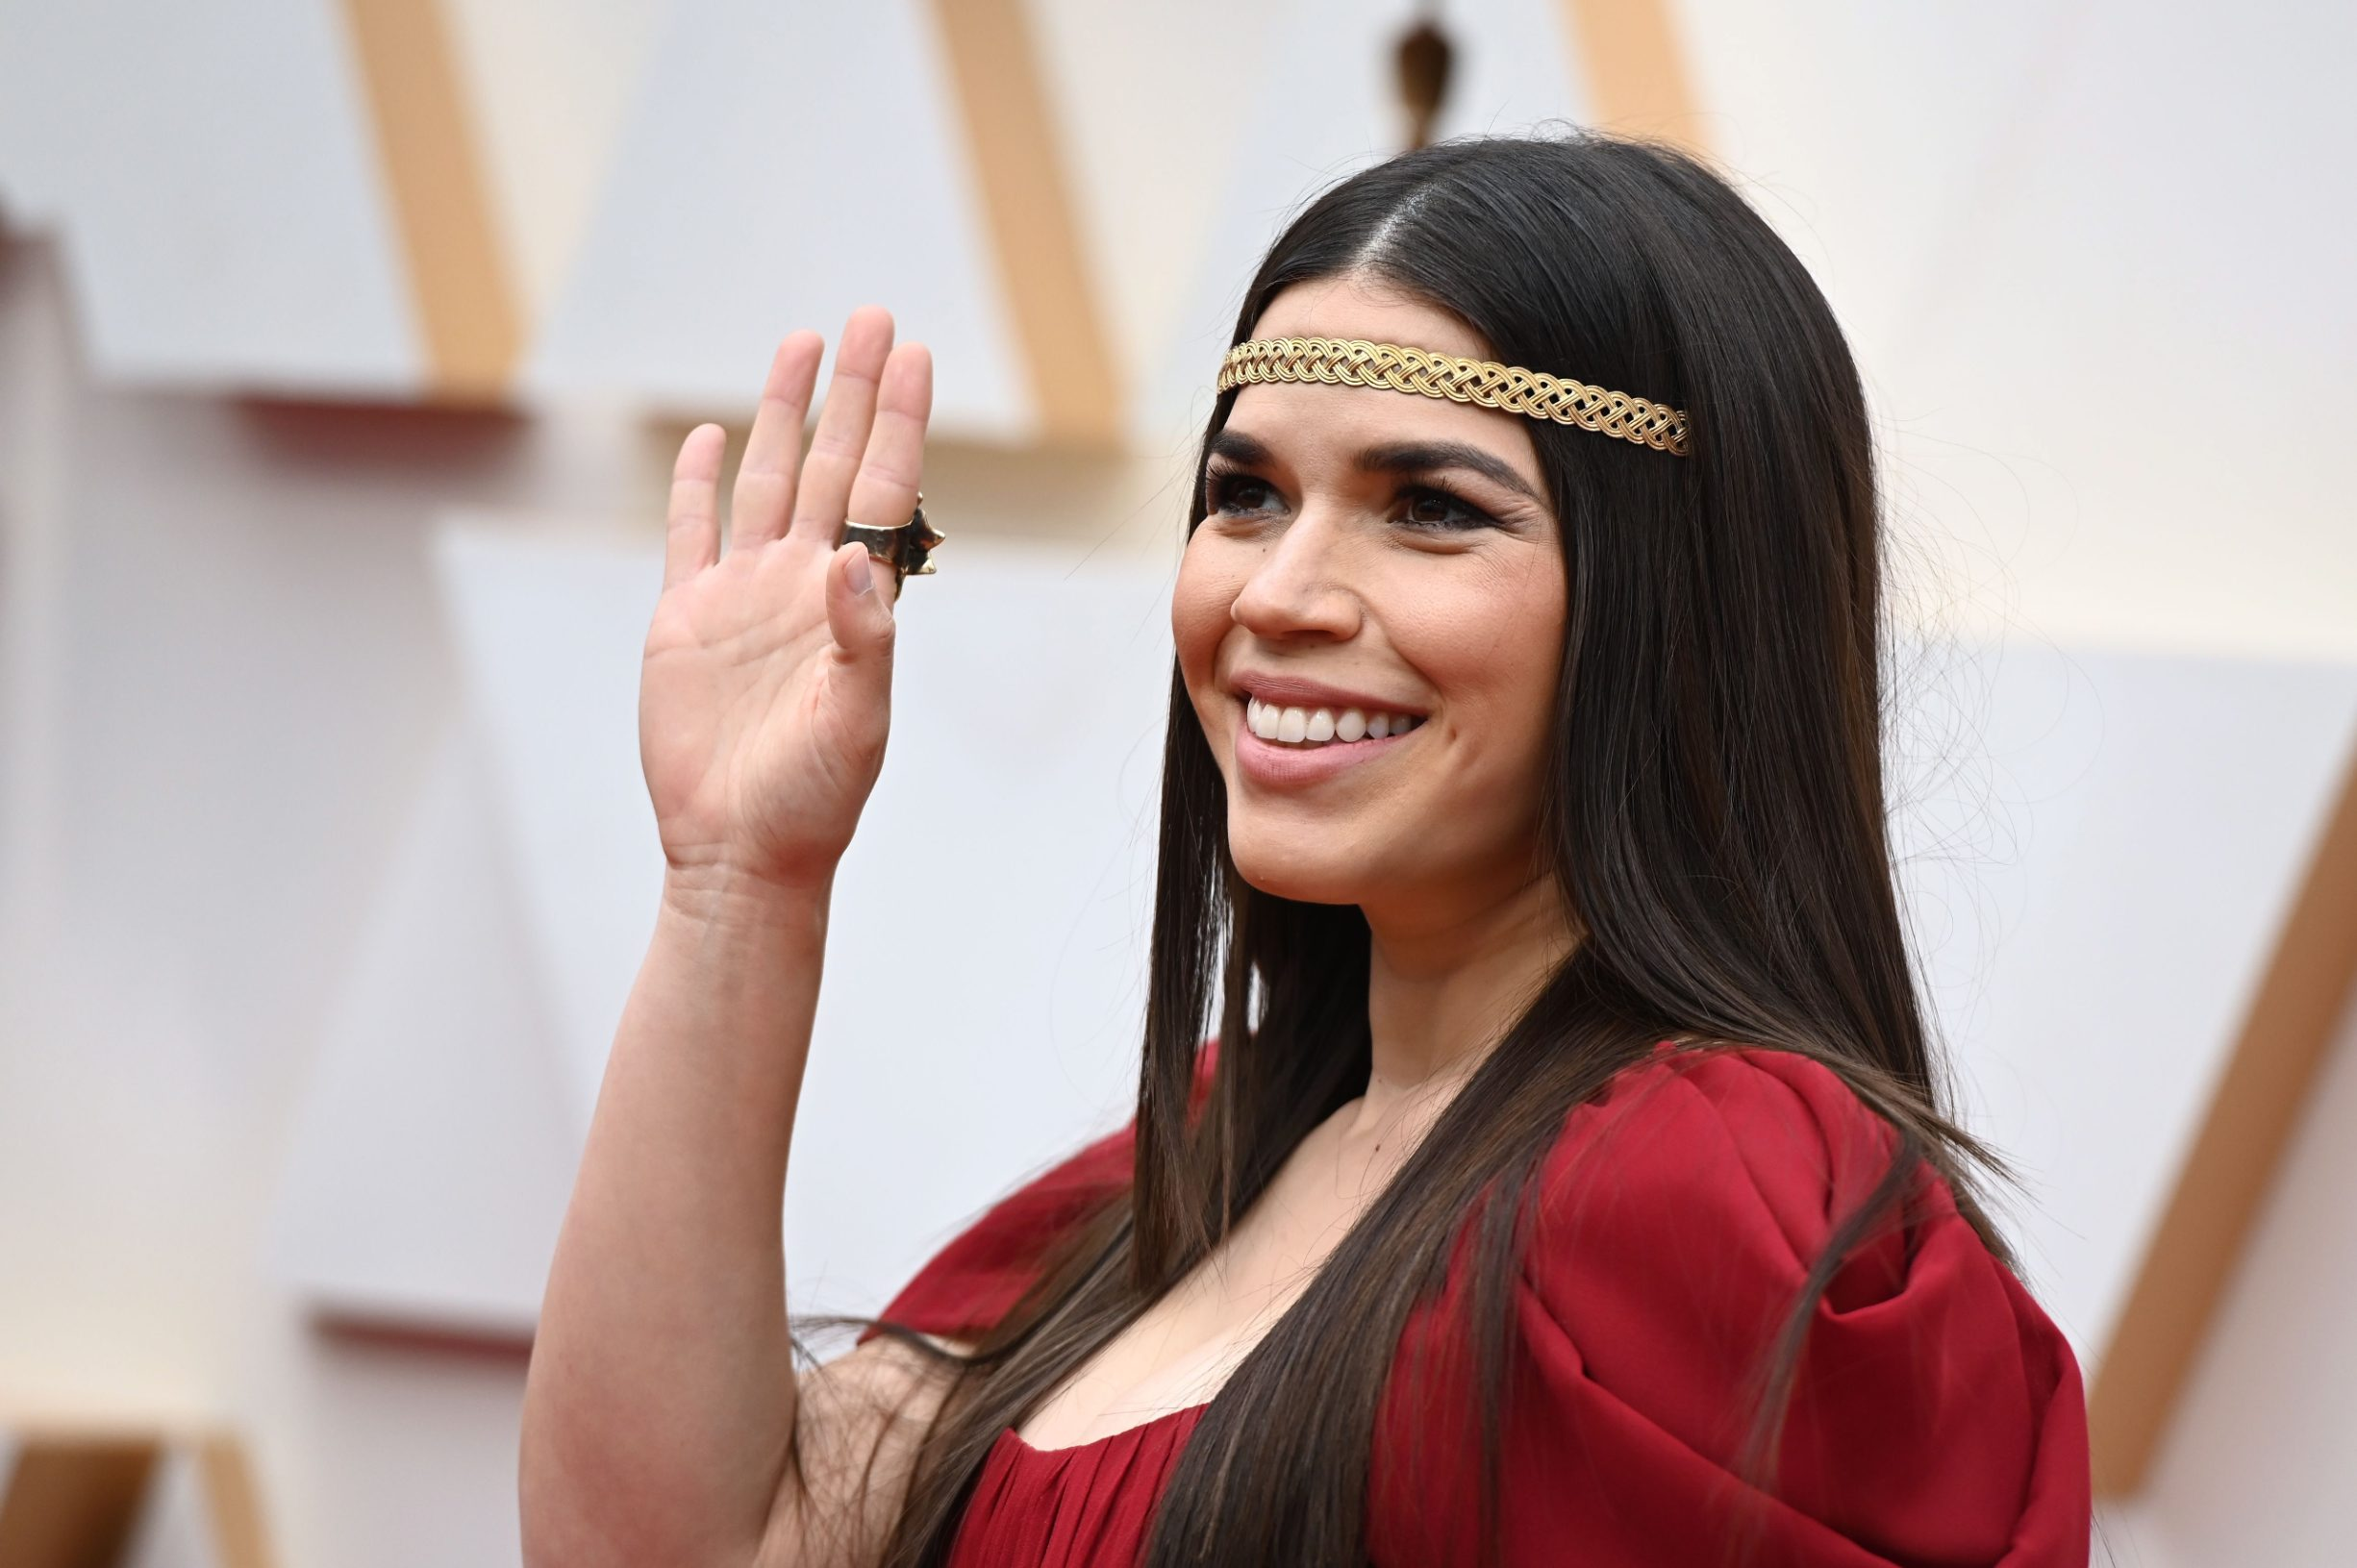 US actress America Ferrera arrives for the 92nd Oscars at the Dolby Theatre in Hollywood, California on February 9, 2020. (Photo by Robyn Beck / AFP)